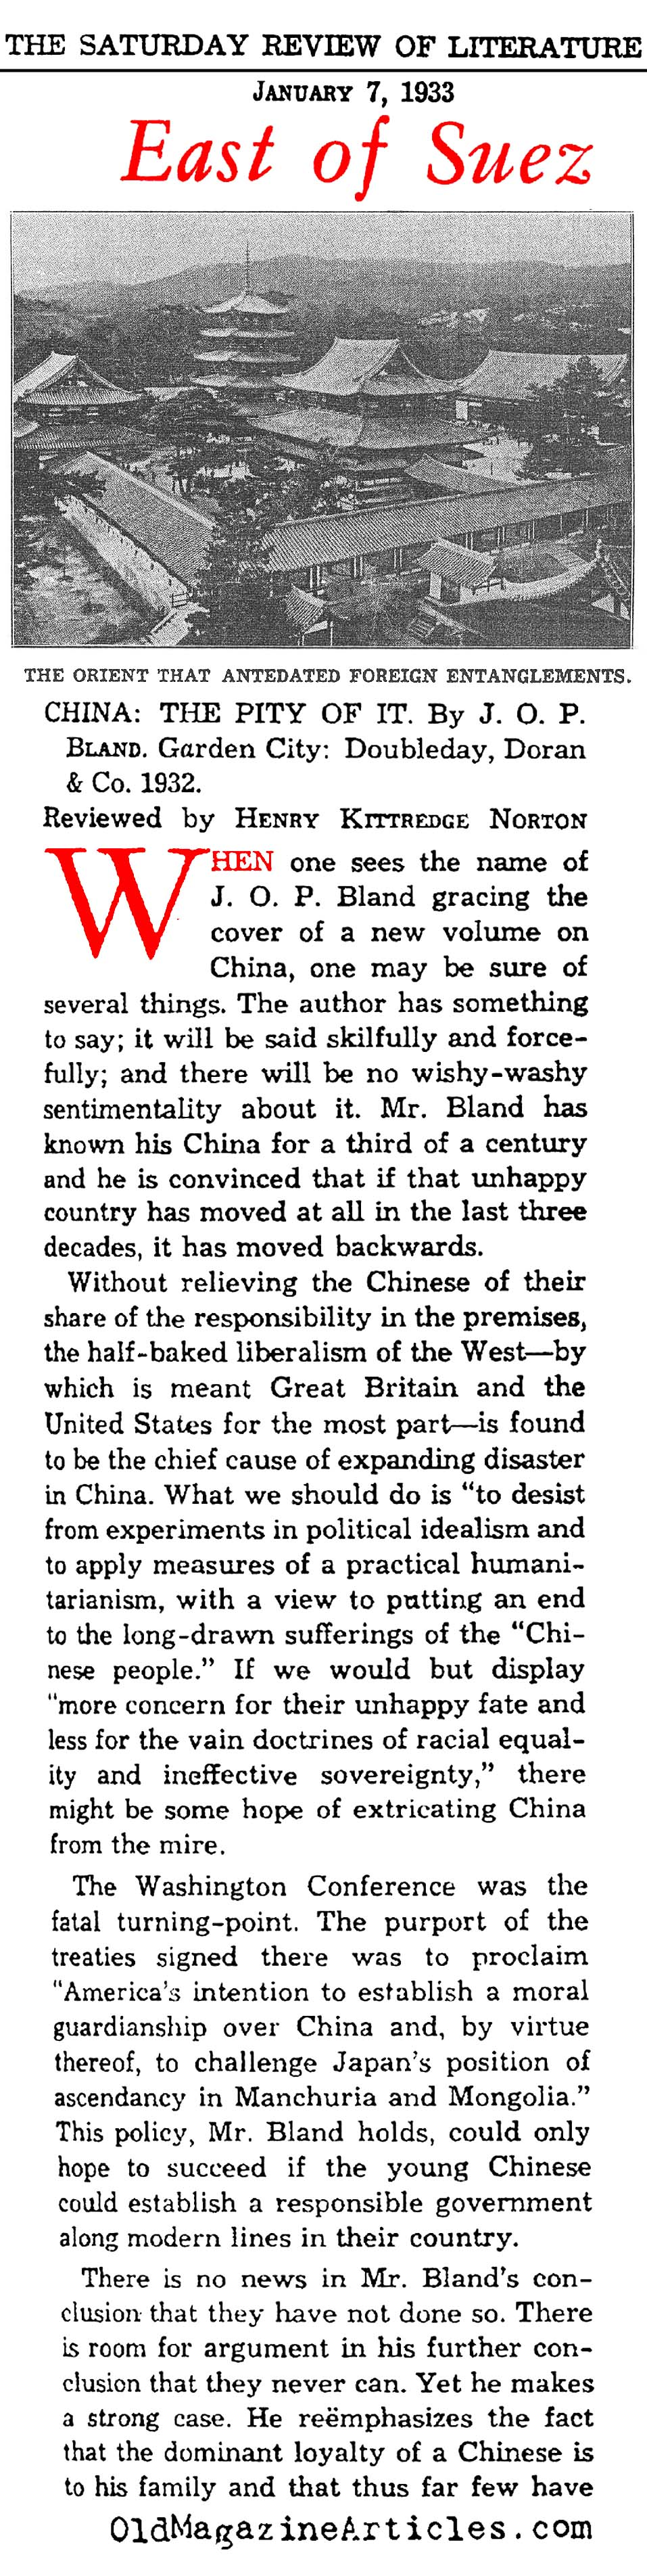 ''China: The Pity of It'' (Saturday Review of Literature, 1933)